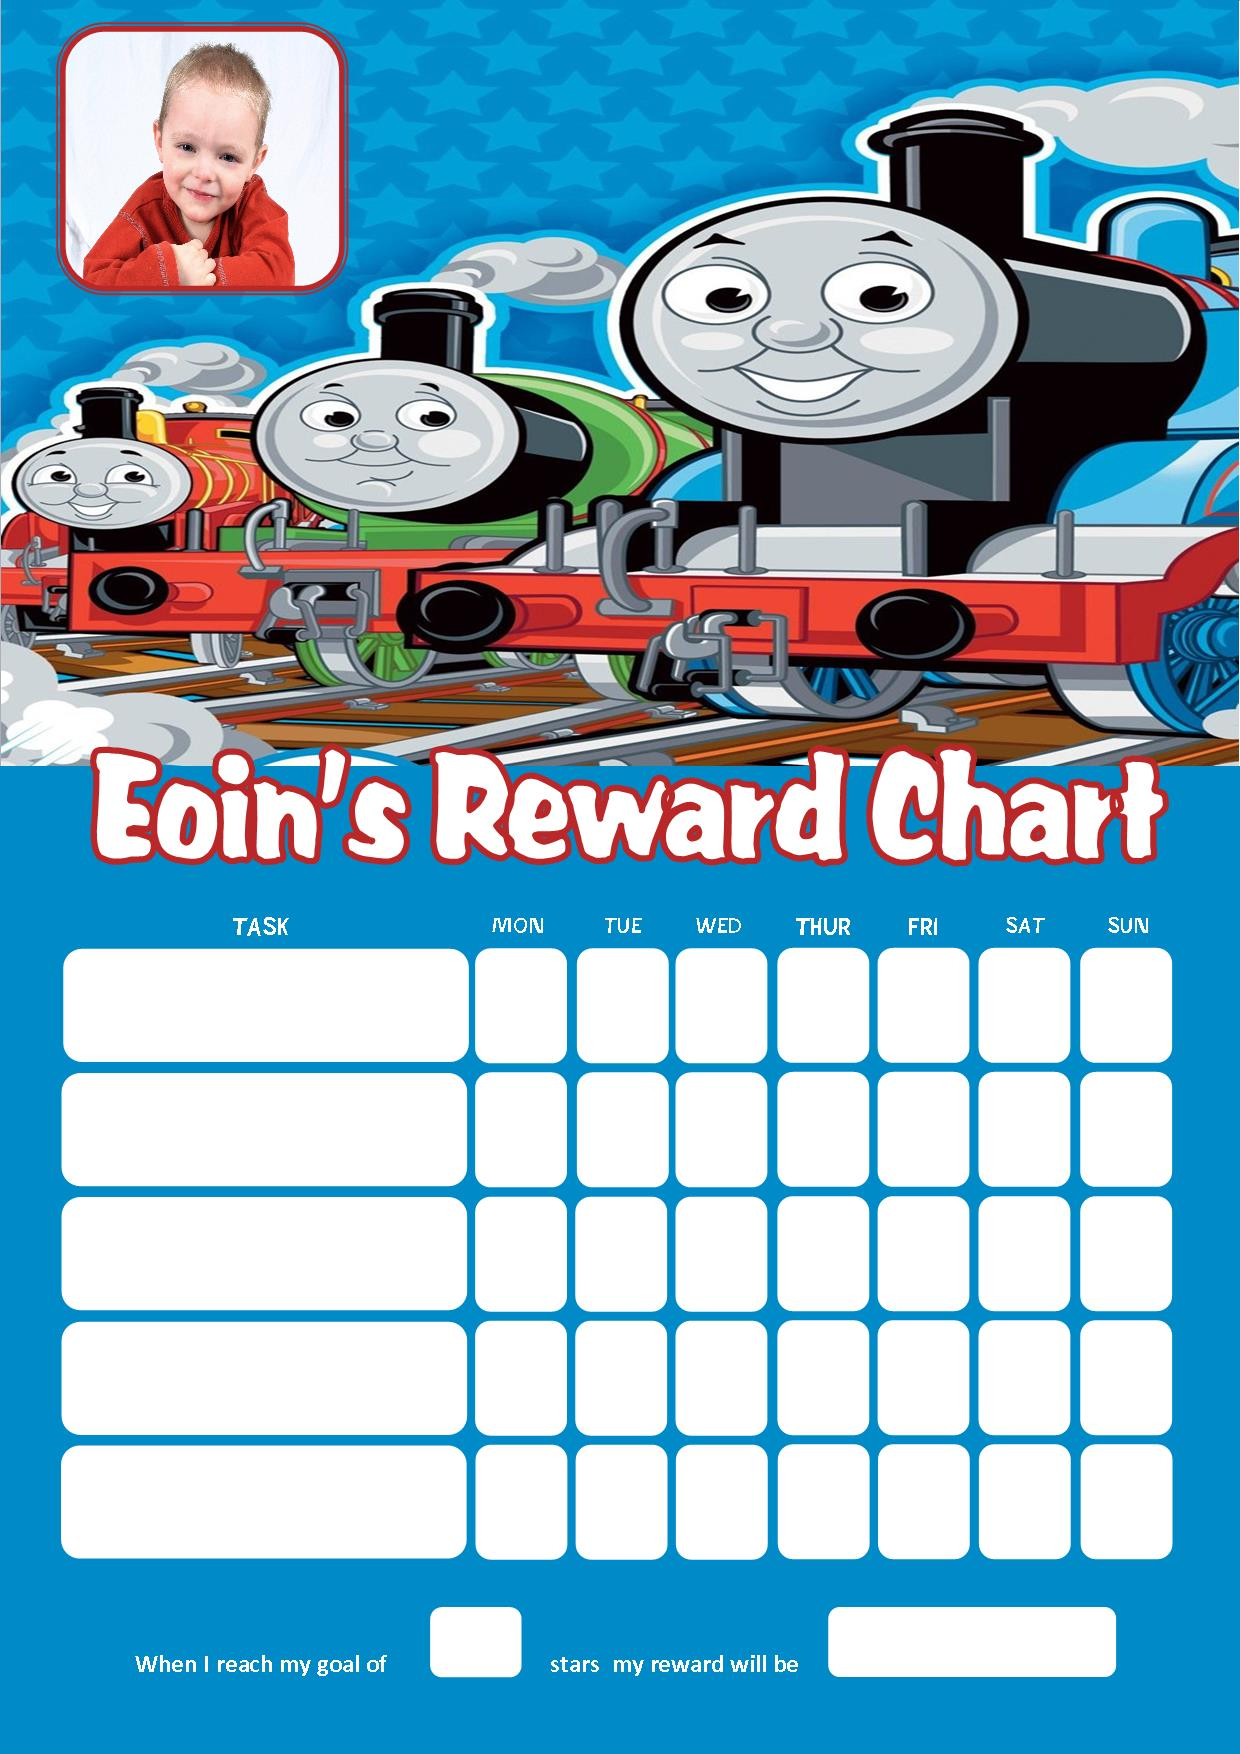 Thomas The Train Party Invitations Printable as good invitation layout